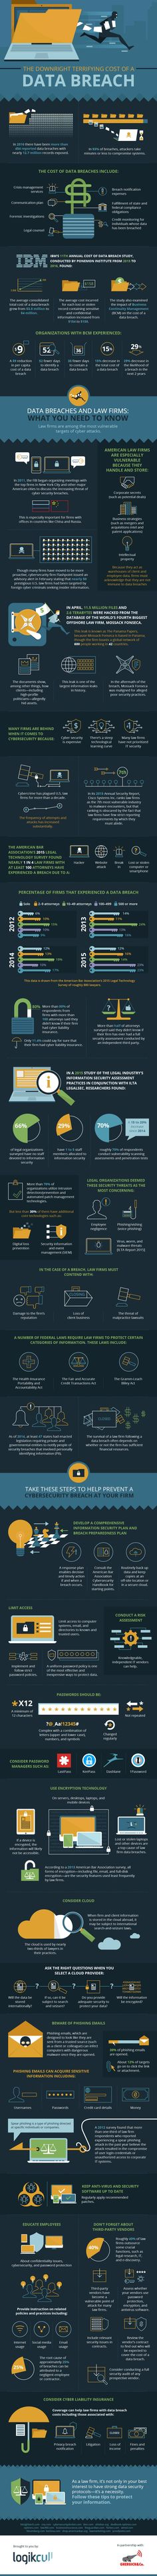 The Downright Terrifying Cost of a Data Breach #Infographic #Technology